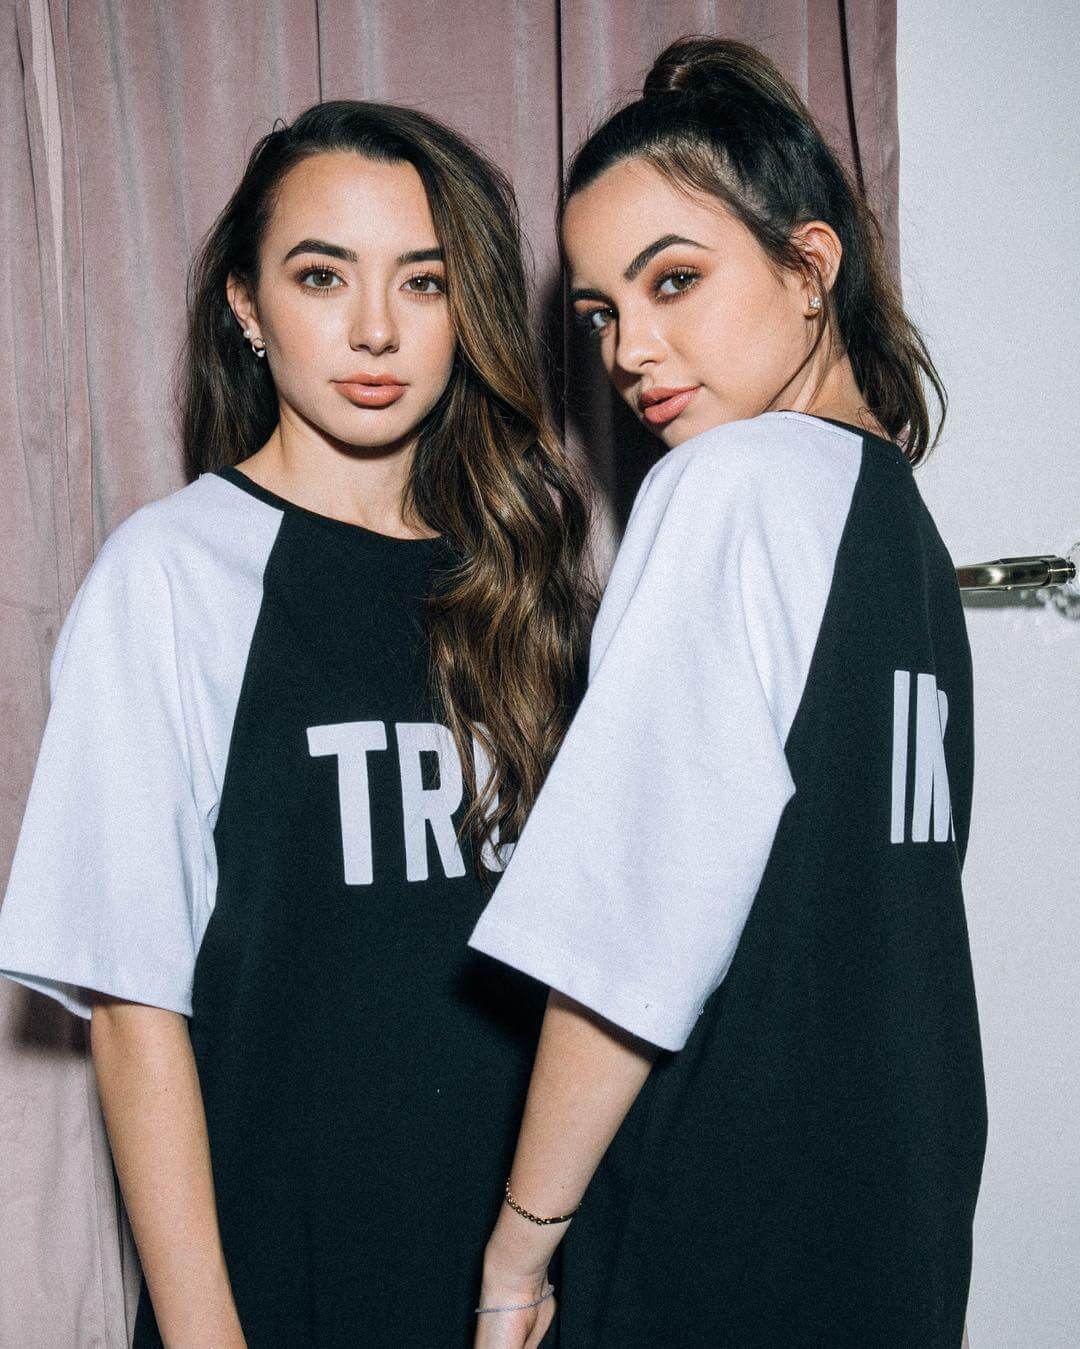 Merrell Twins hot picture